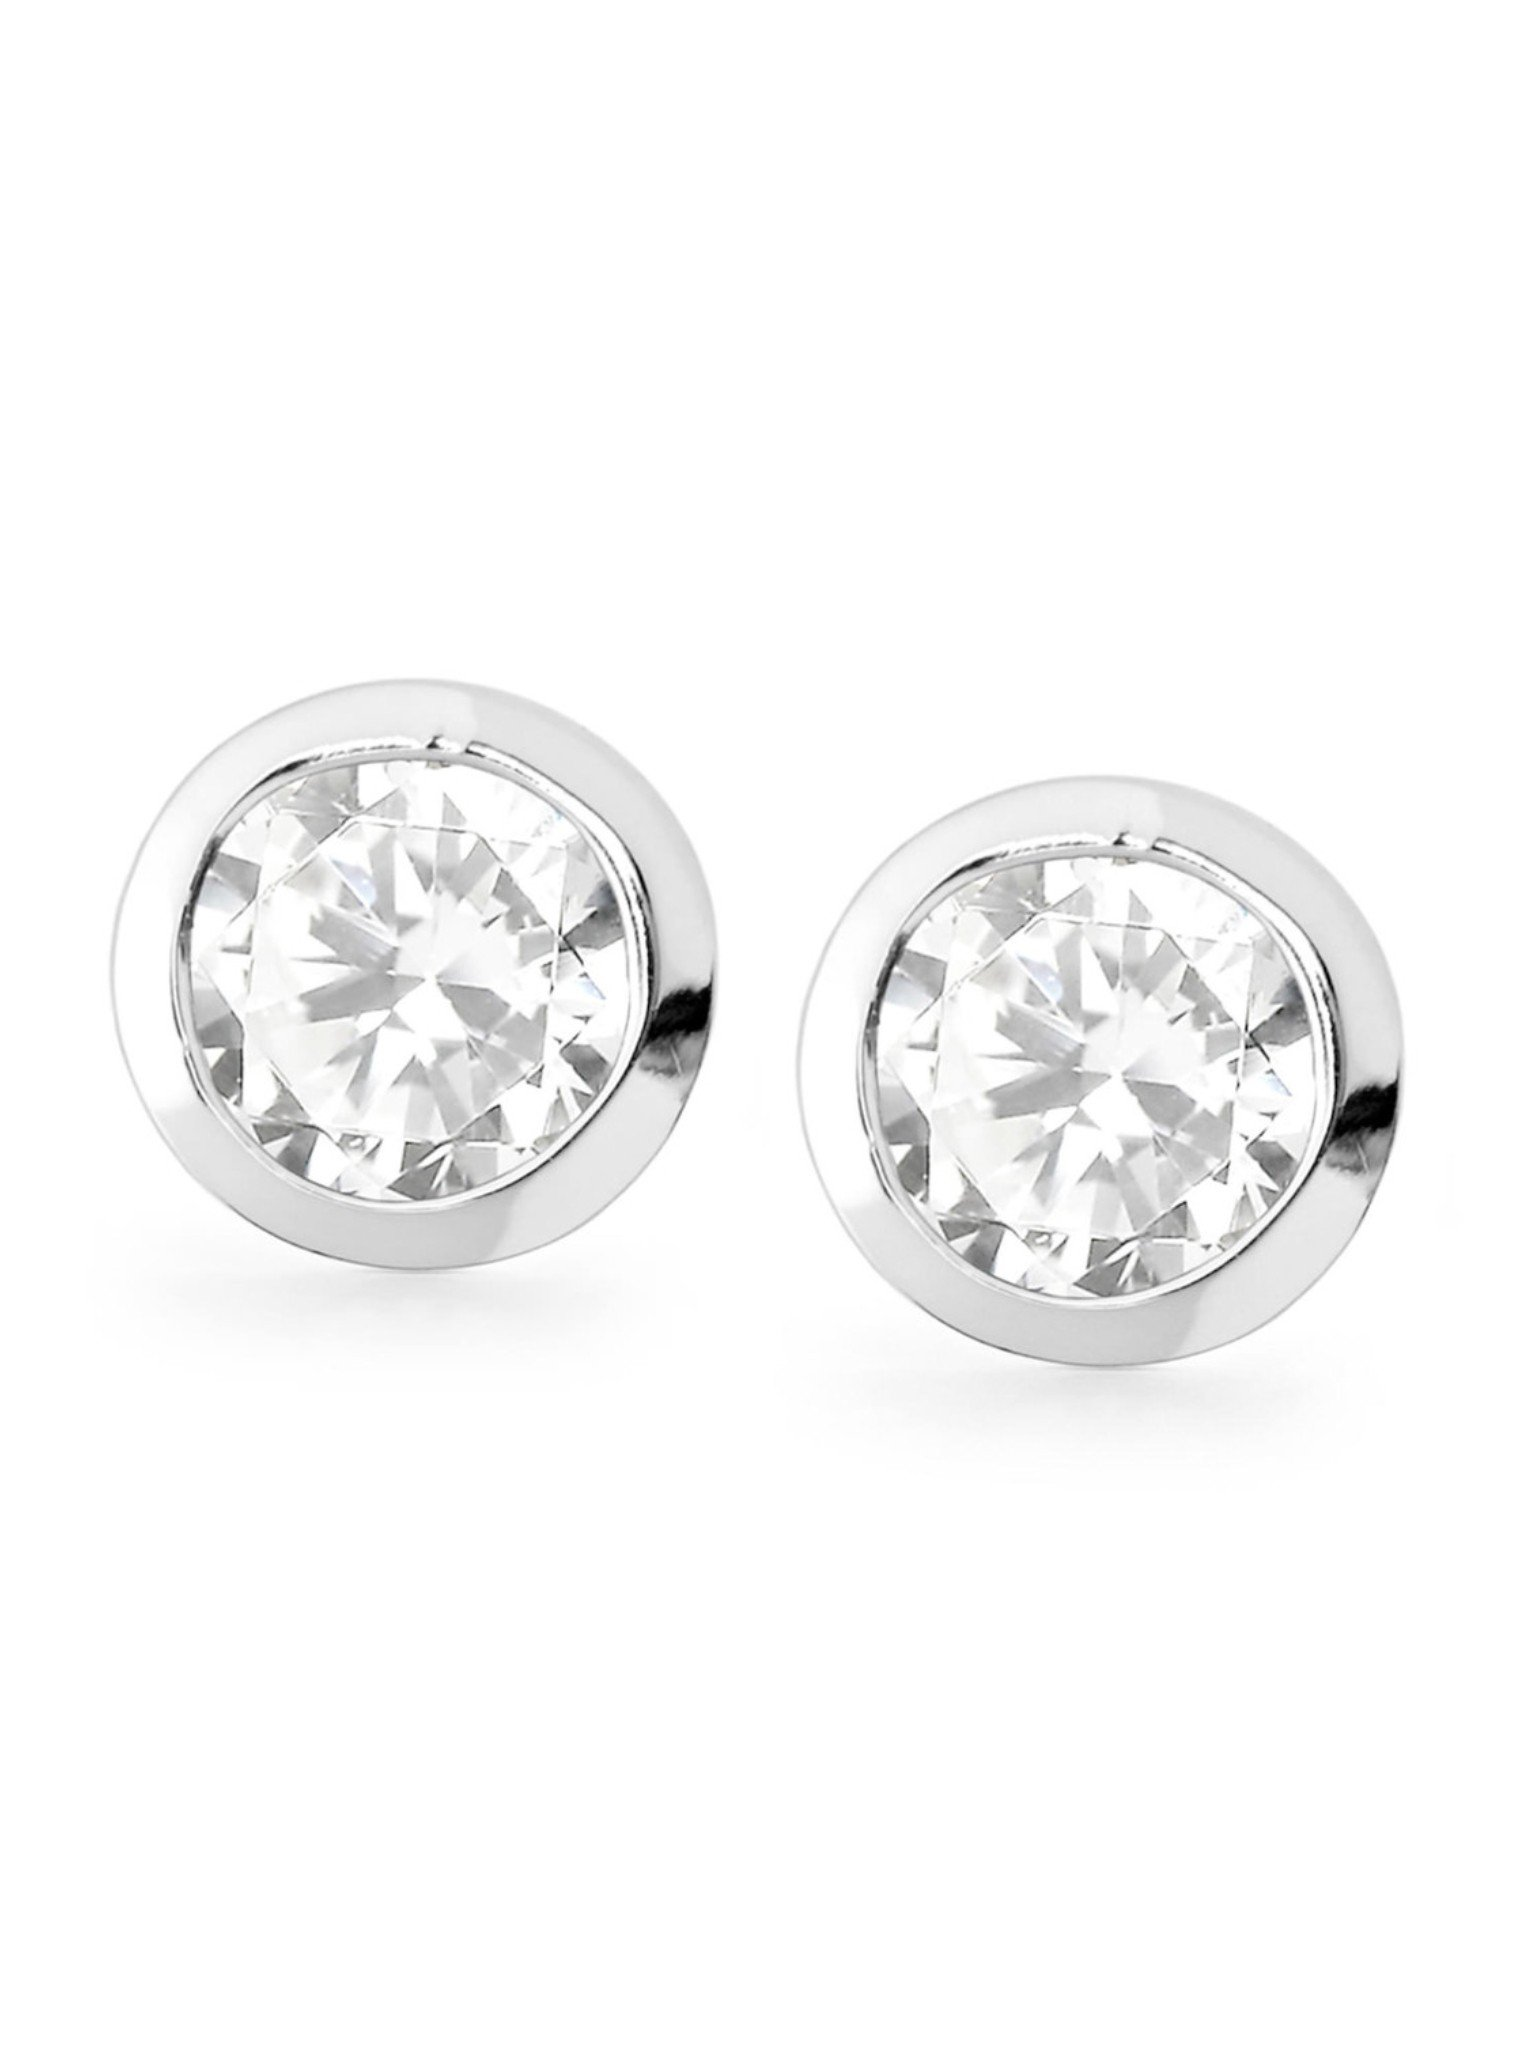 North Star stud earrings in silver and clear CZ